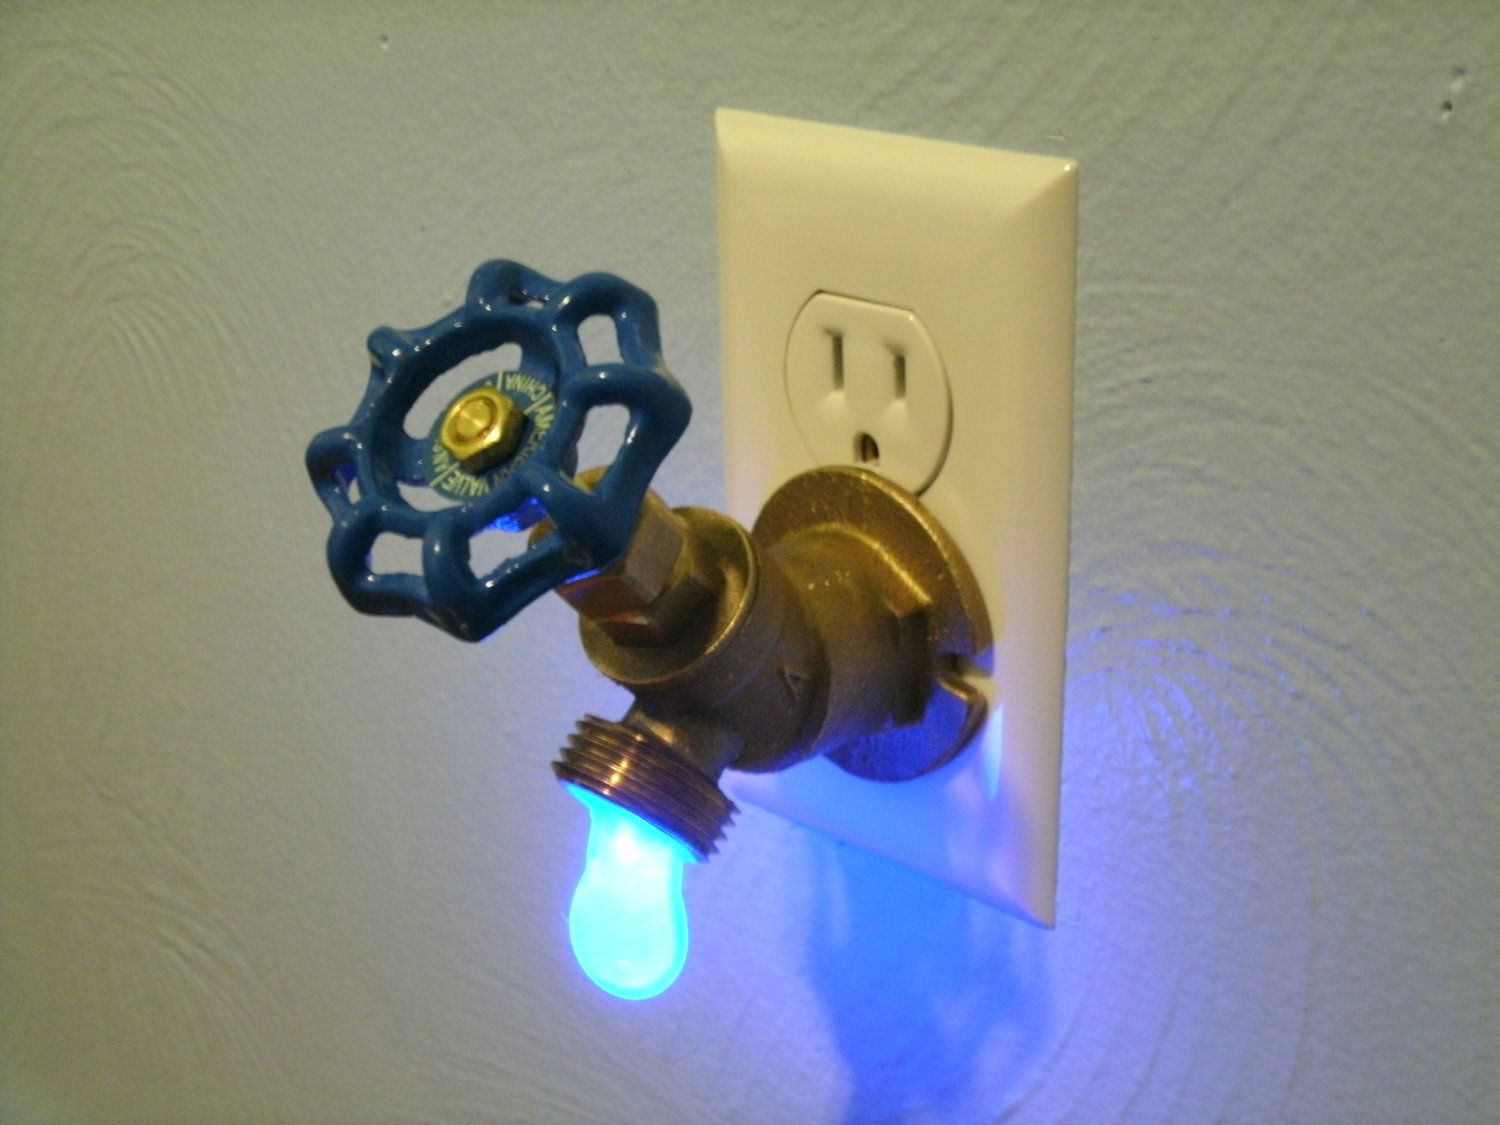 Blue+LED+Faucet+Valve+night+light+by+Greyturtle+on+Etsy,+$50.00 ...